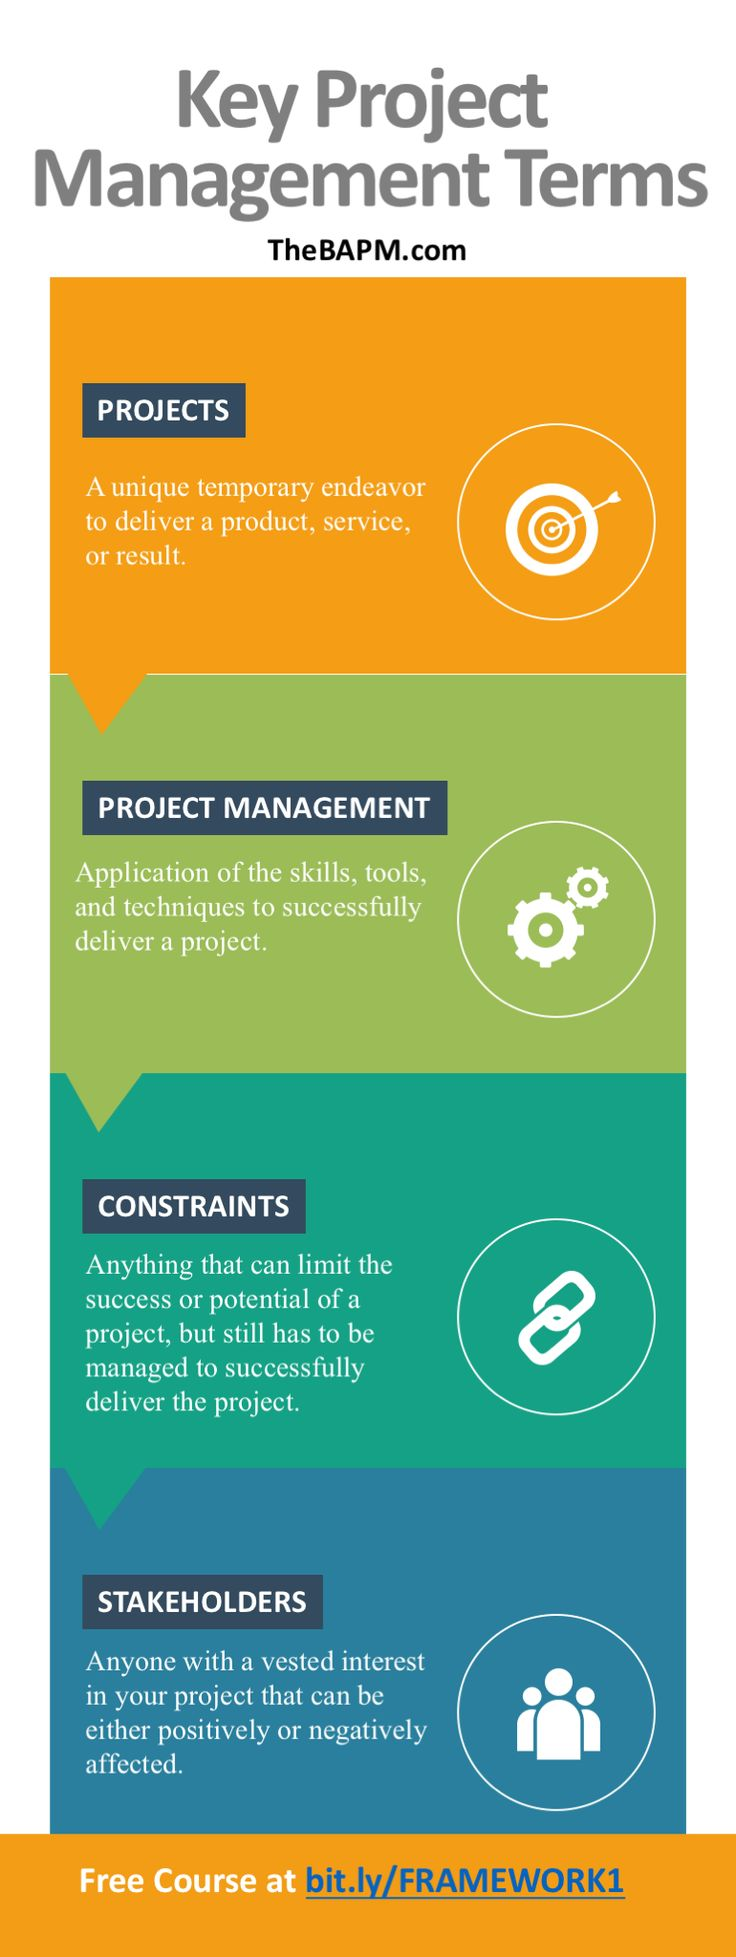 Yli tuhat ideaa pmp exam prep pinterestiss yrityshallinto key project management terms projects project management constraints stakeholders these are 1betcityfo Choice Image